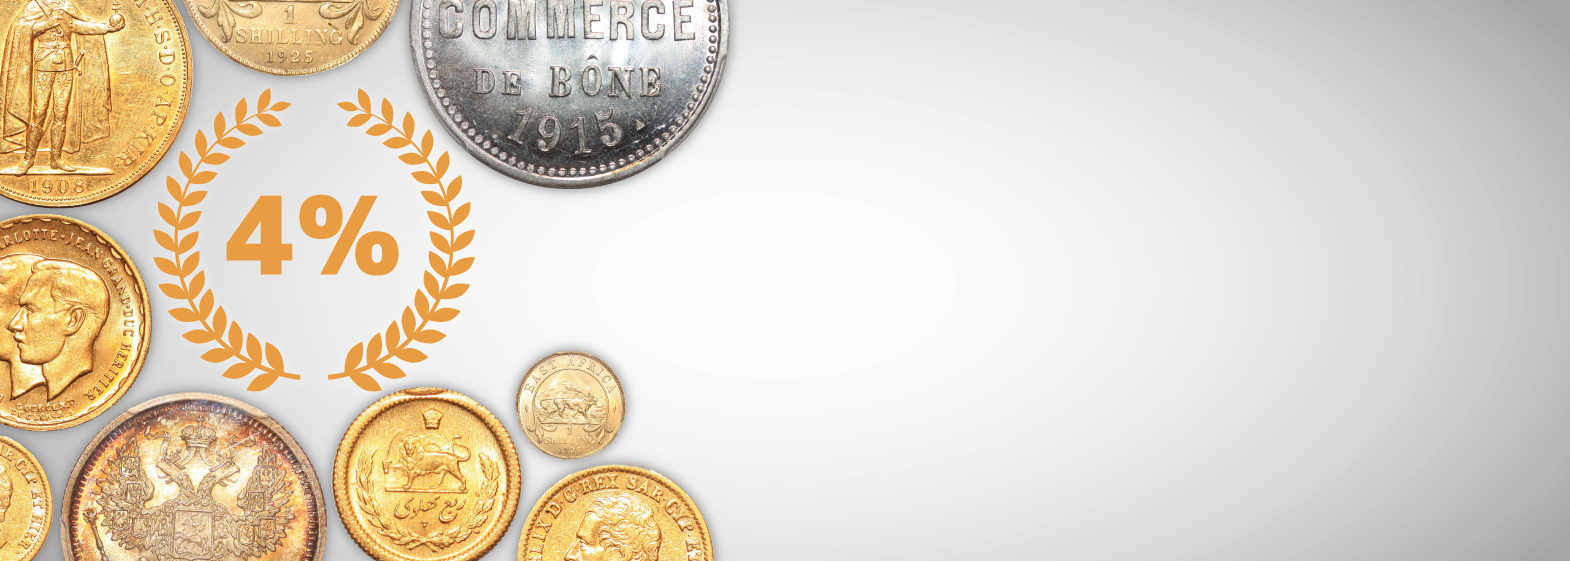 Buy & Sell every day with Numismatic Online Auctions Platform - Millenium State!